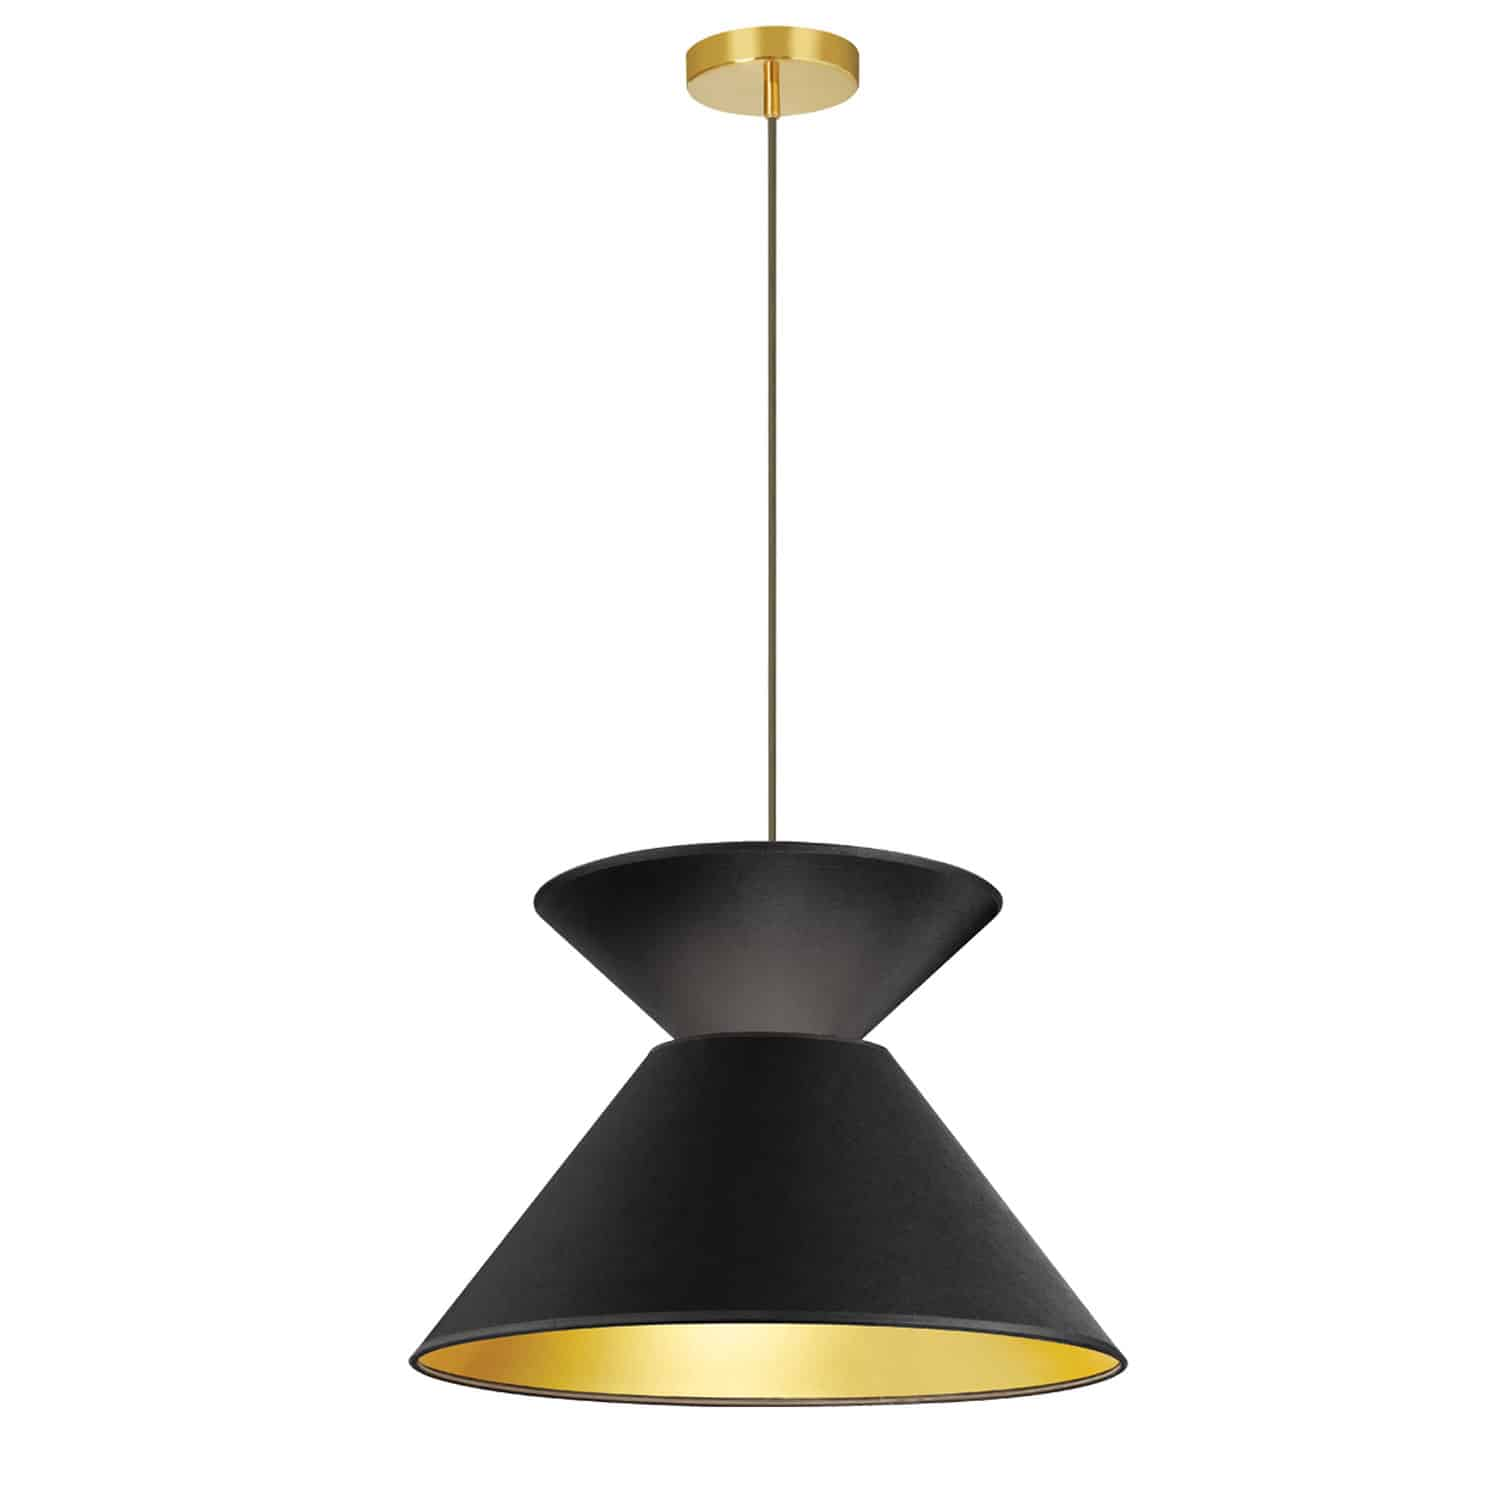 1 Light Patricia Pendant, Aged Brass with Black/Gold Shade